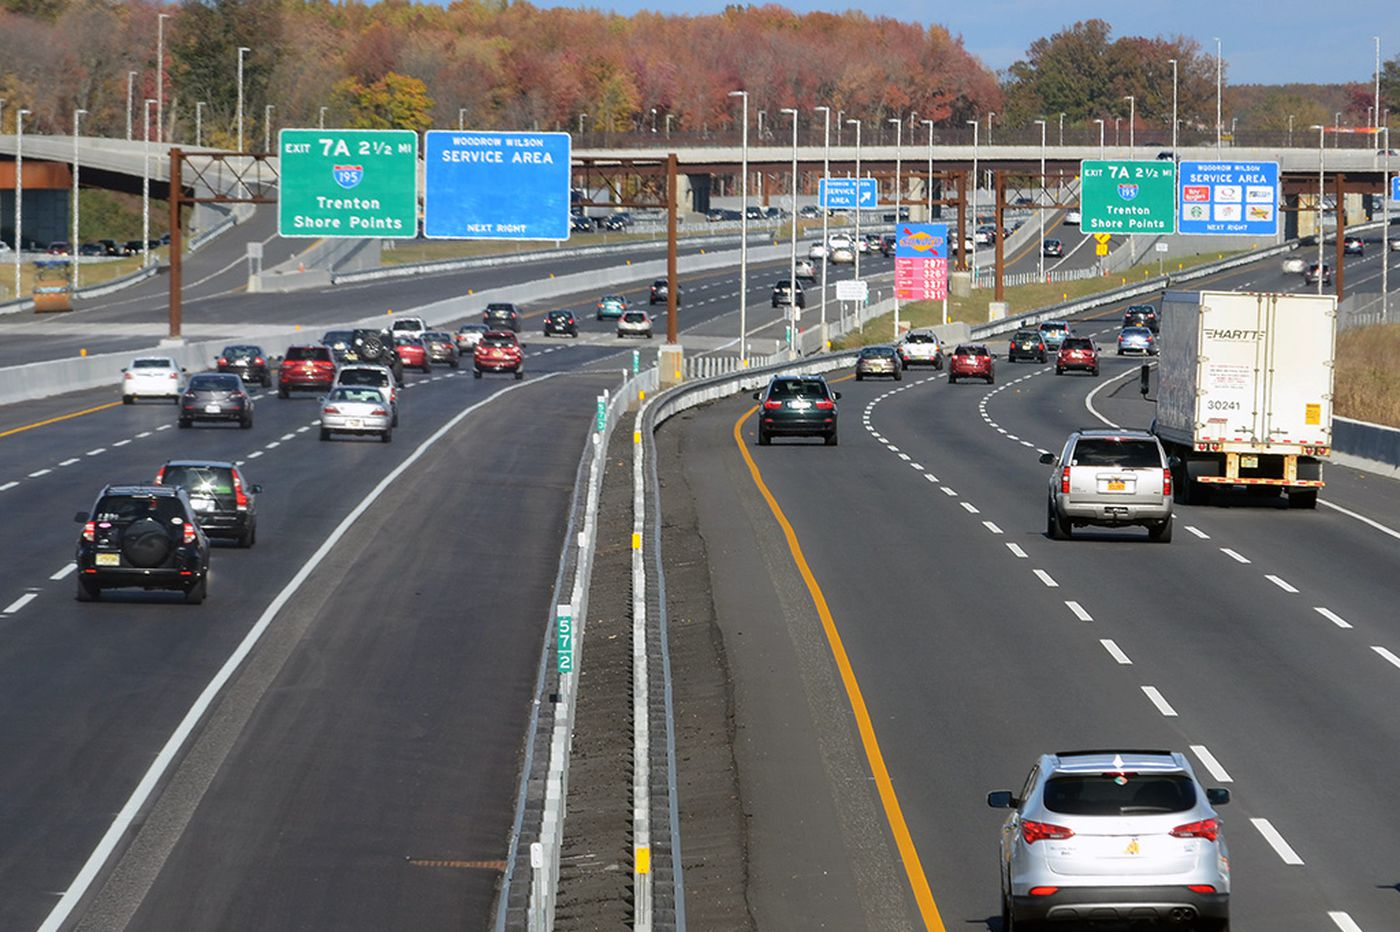 What a relief extra lanes on the N.J. Turnpike are